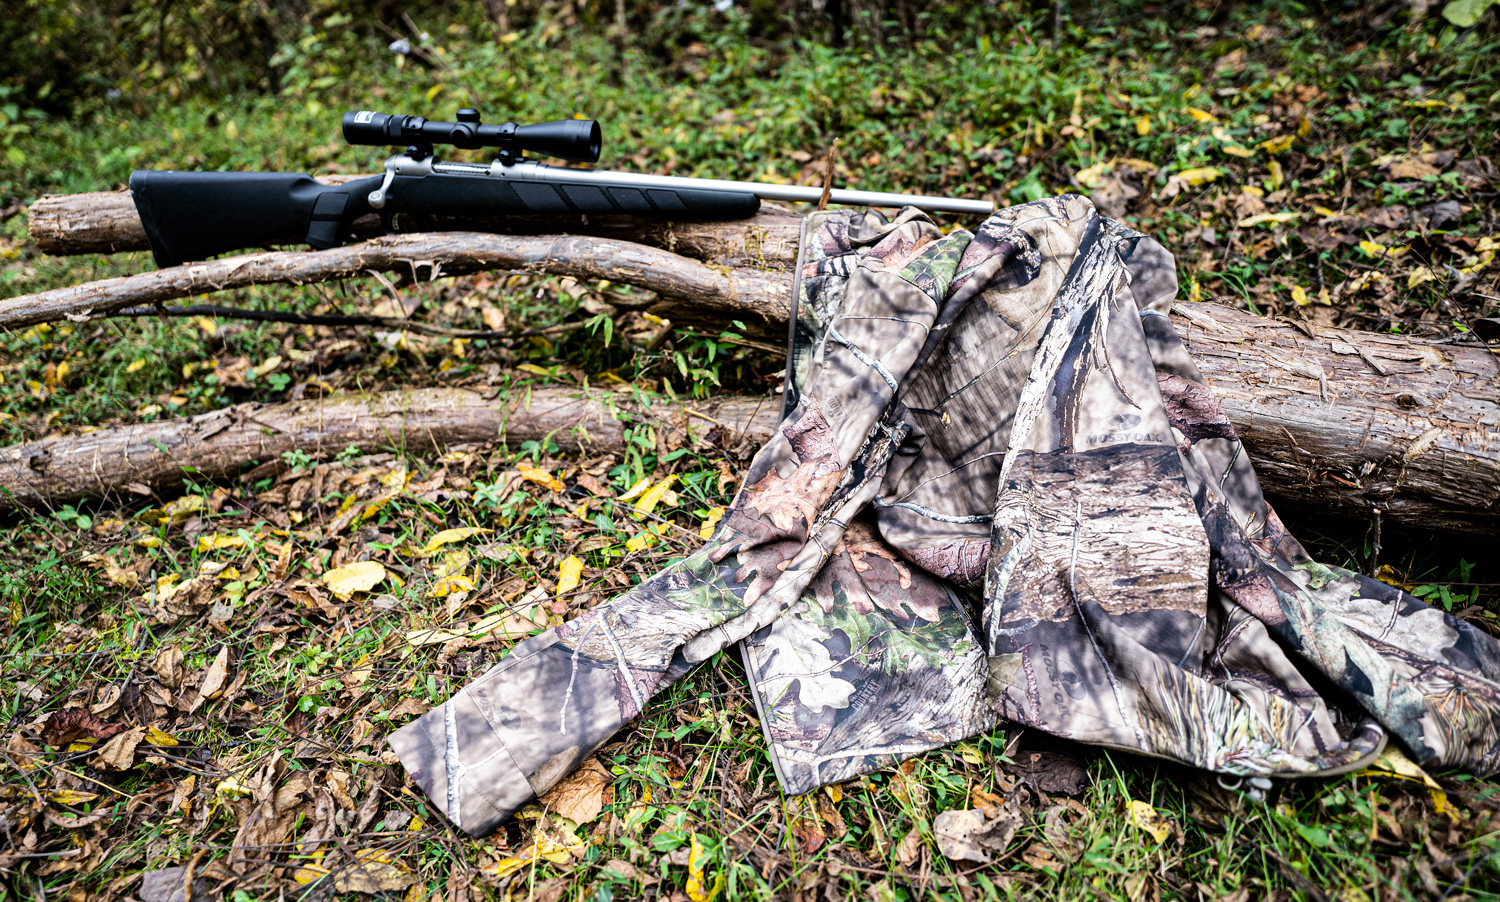 scent control hunting jacket and rifle in the woods